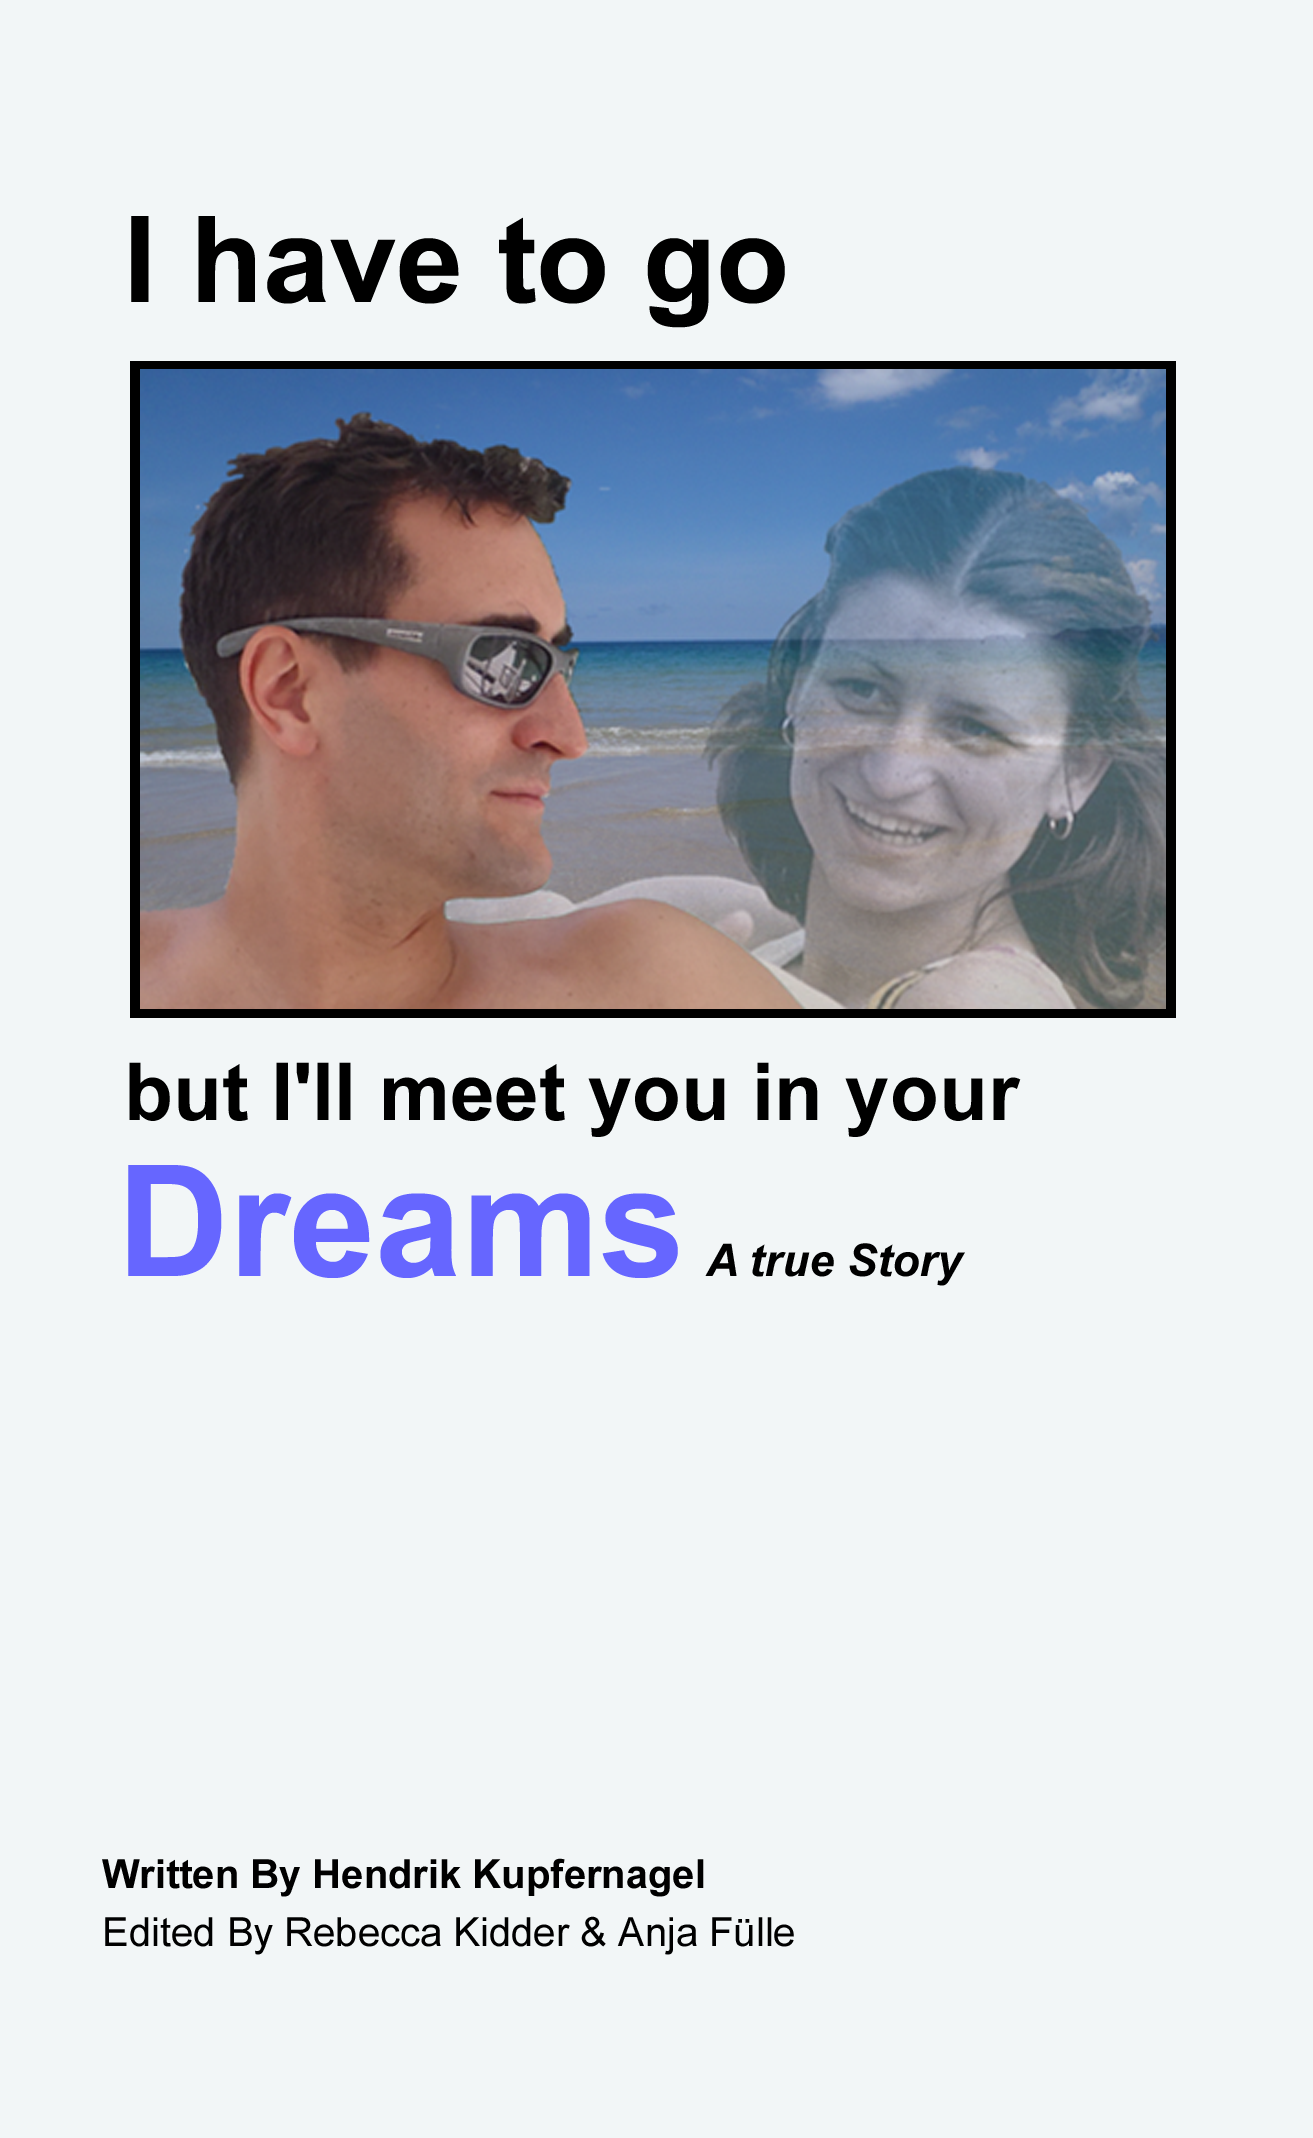 I HAVE TO GO BUT I'LL MEET YOU IN YOUR DREAMS